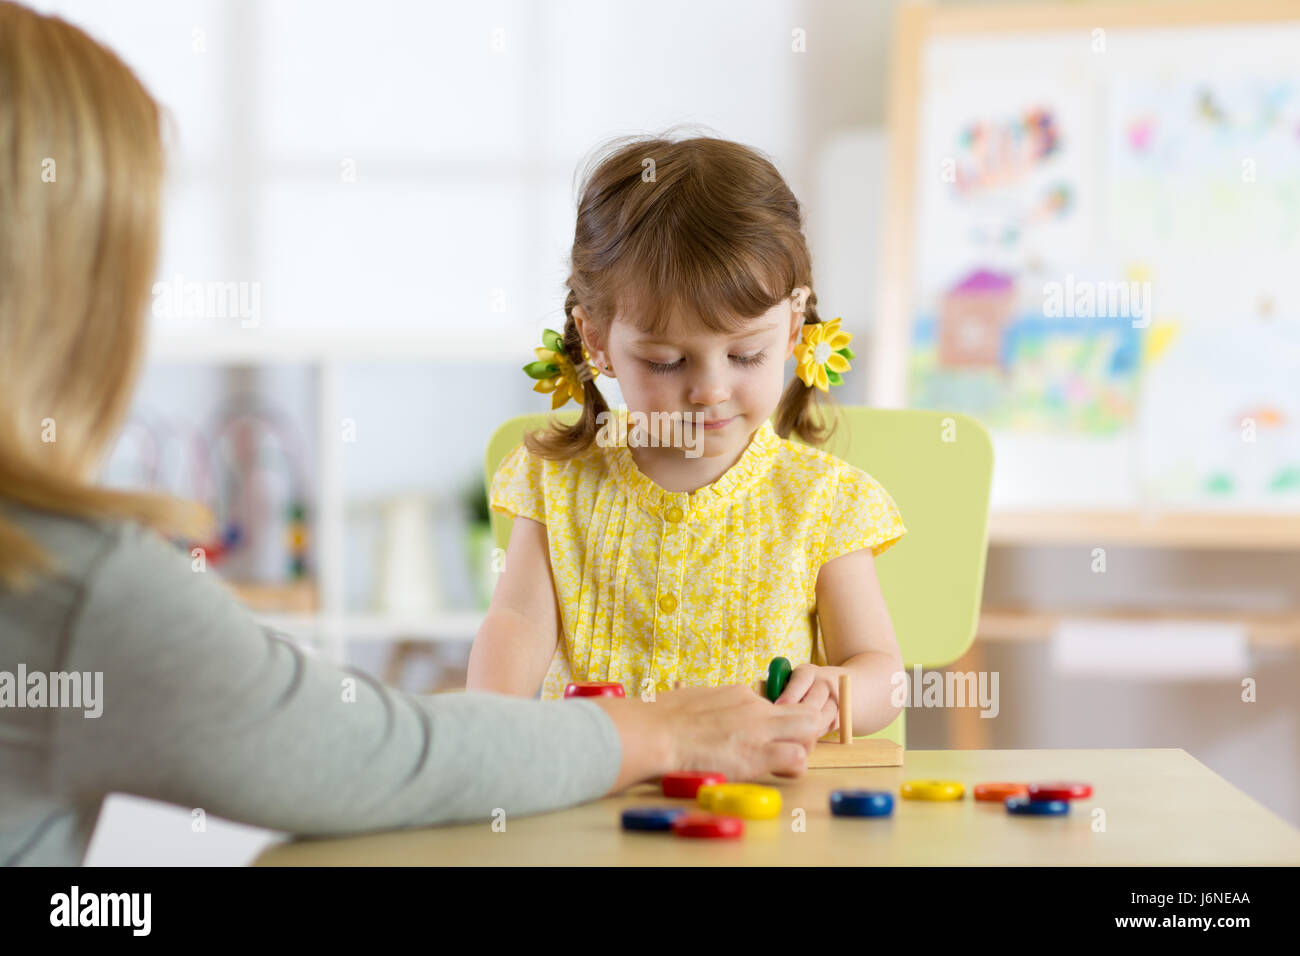 Tutor and preschooler kid playing with educational toys - Stock Image